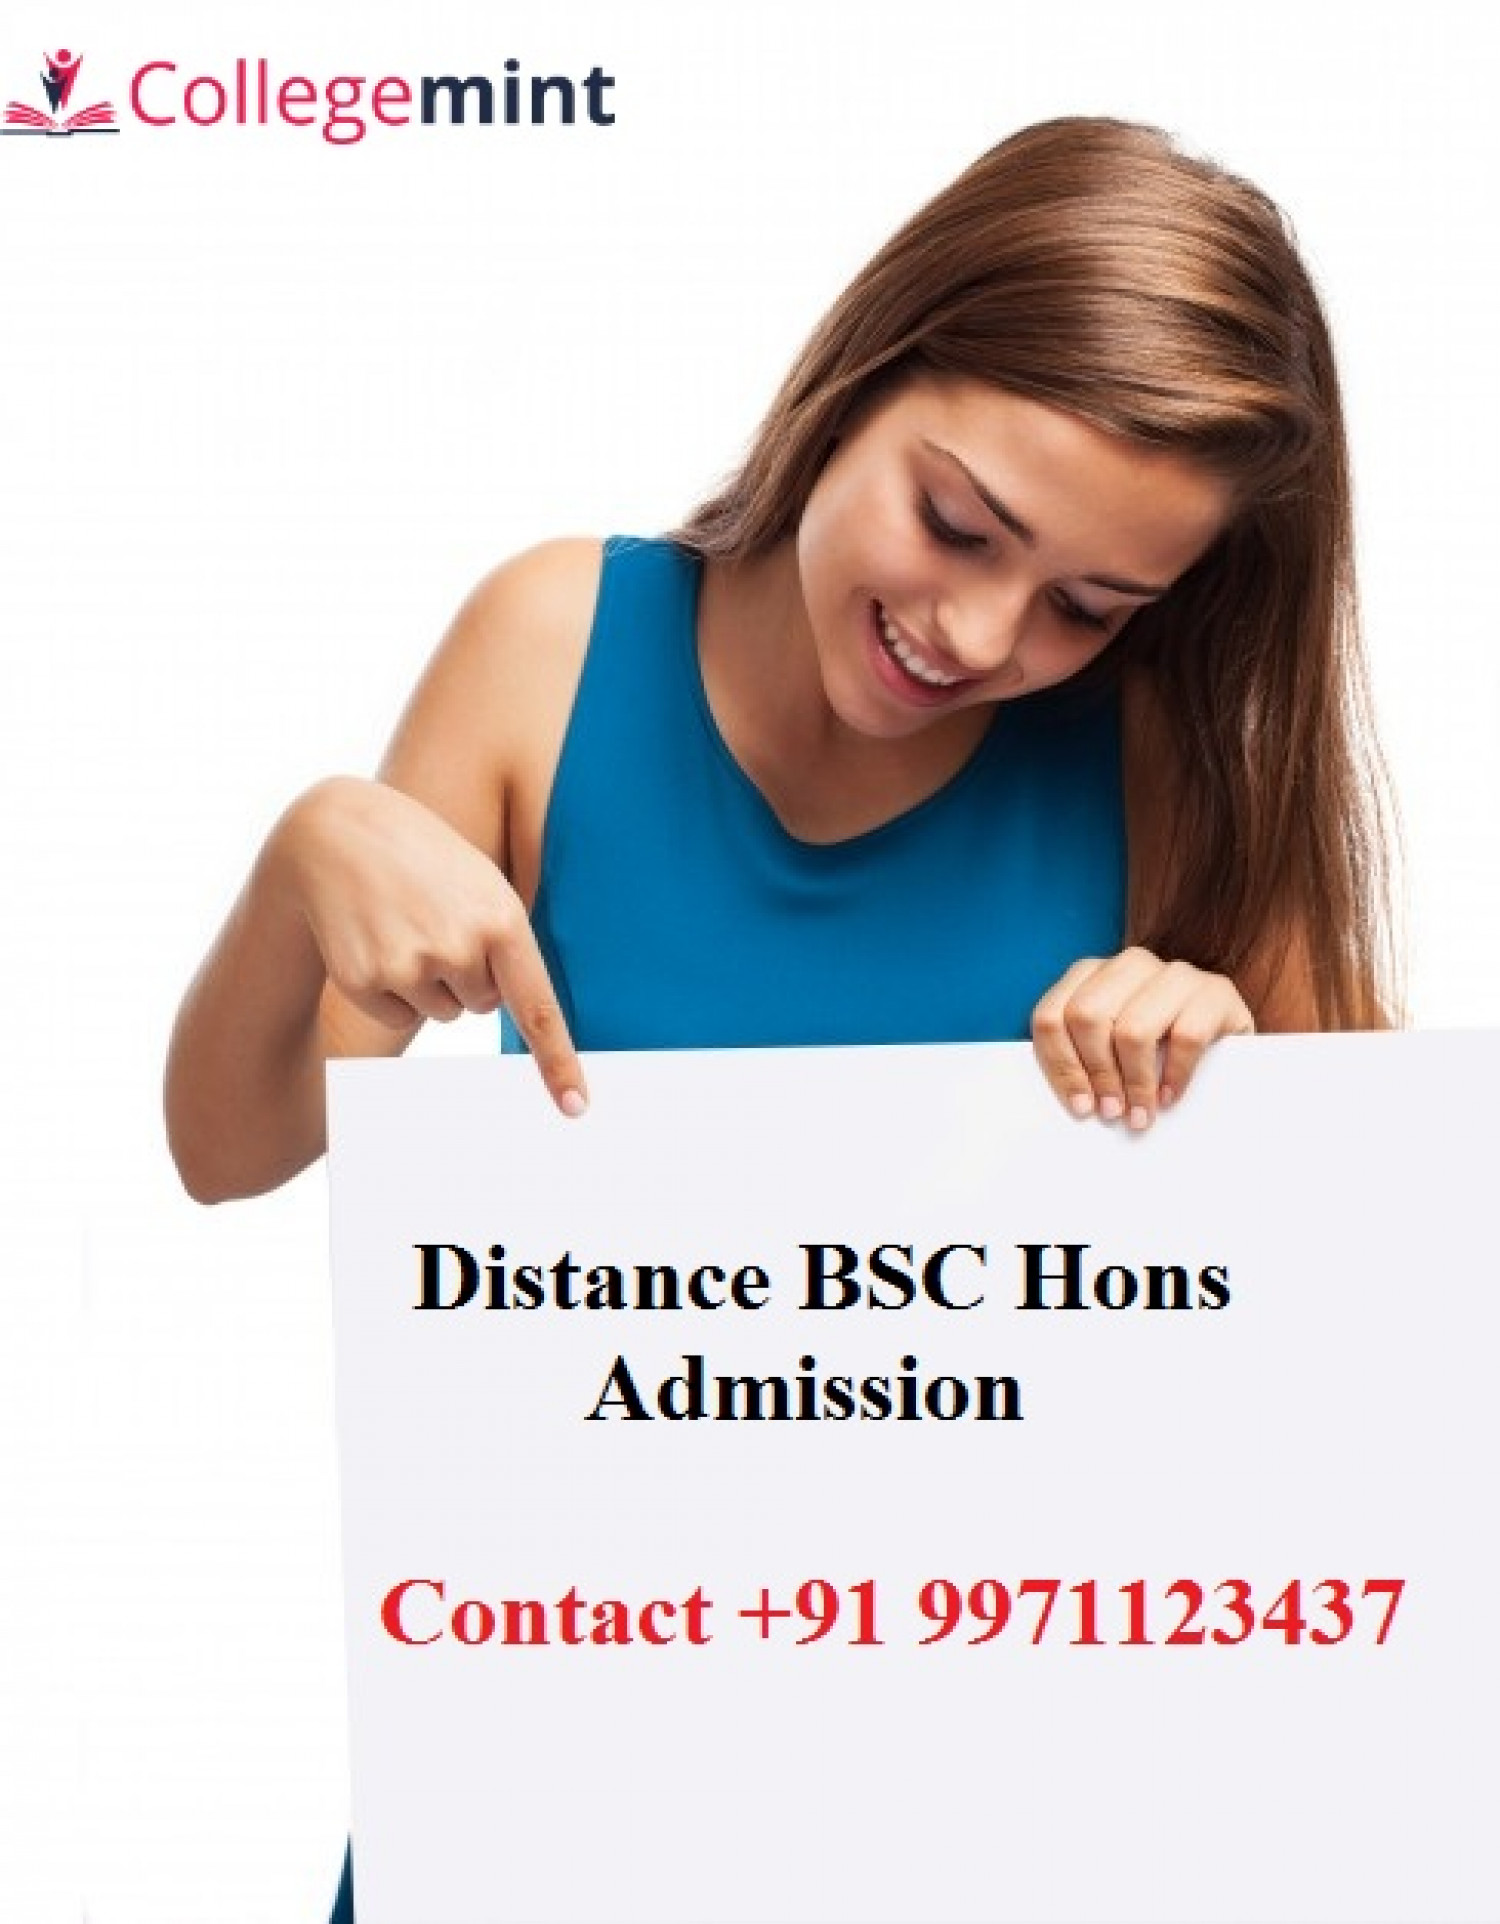 Distance BSC Hons Admission: Top Universities For Distance BSC Hons Infographic